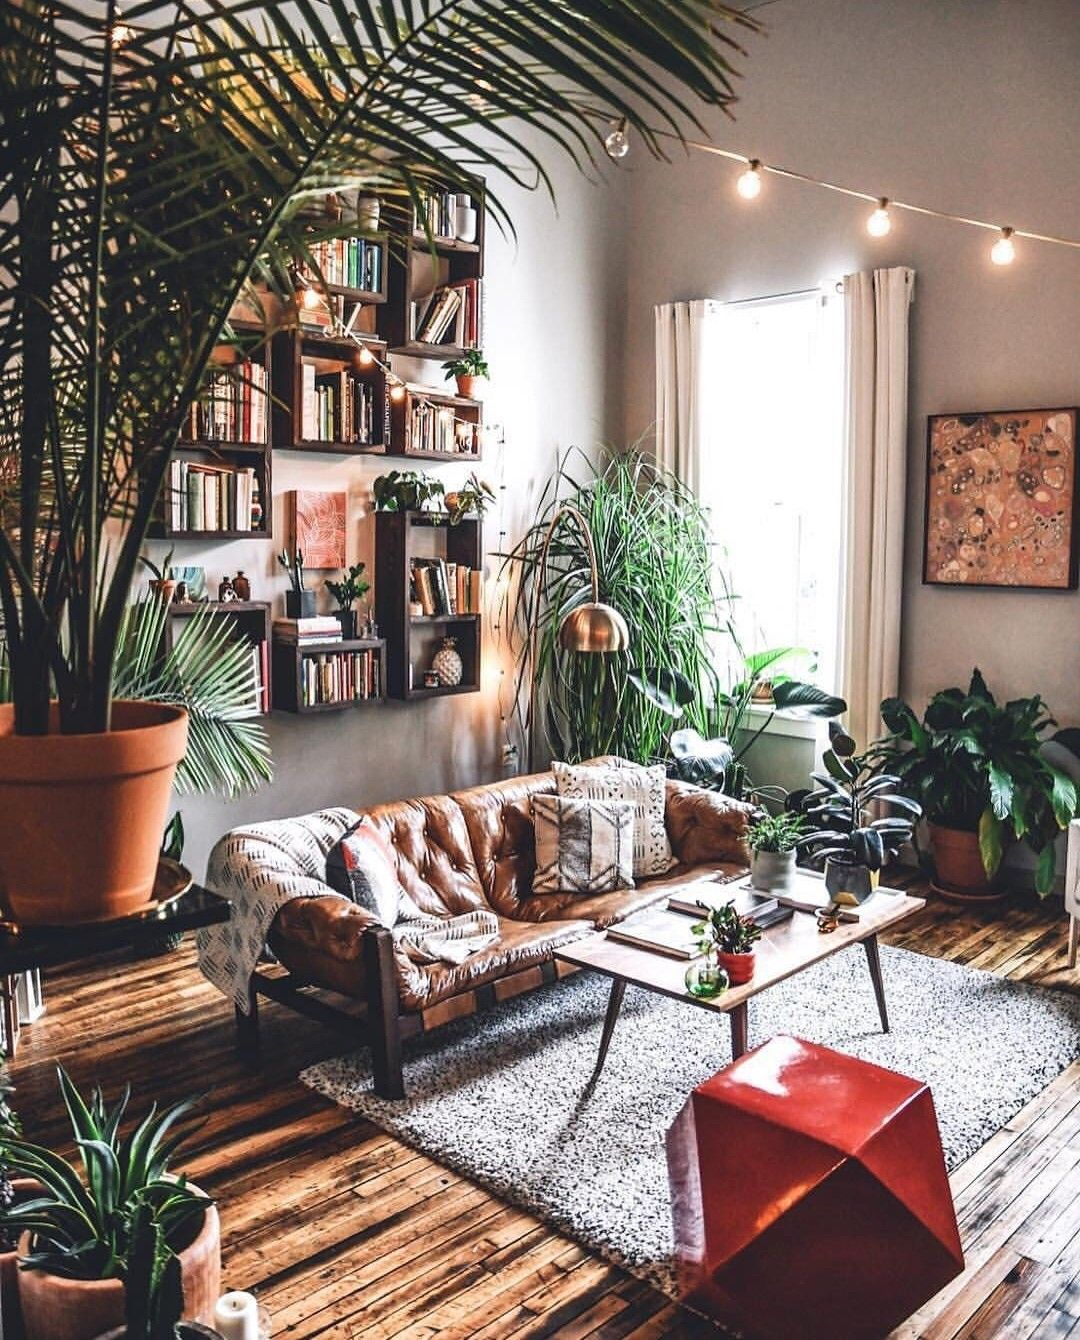 Living Room Like The Shelving With Images Interior Design